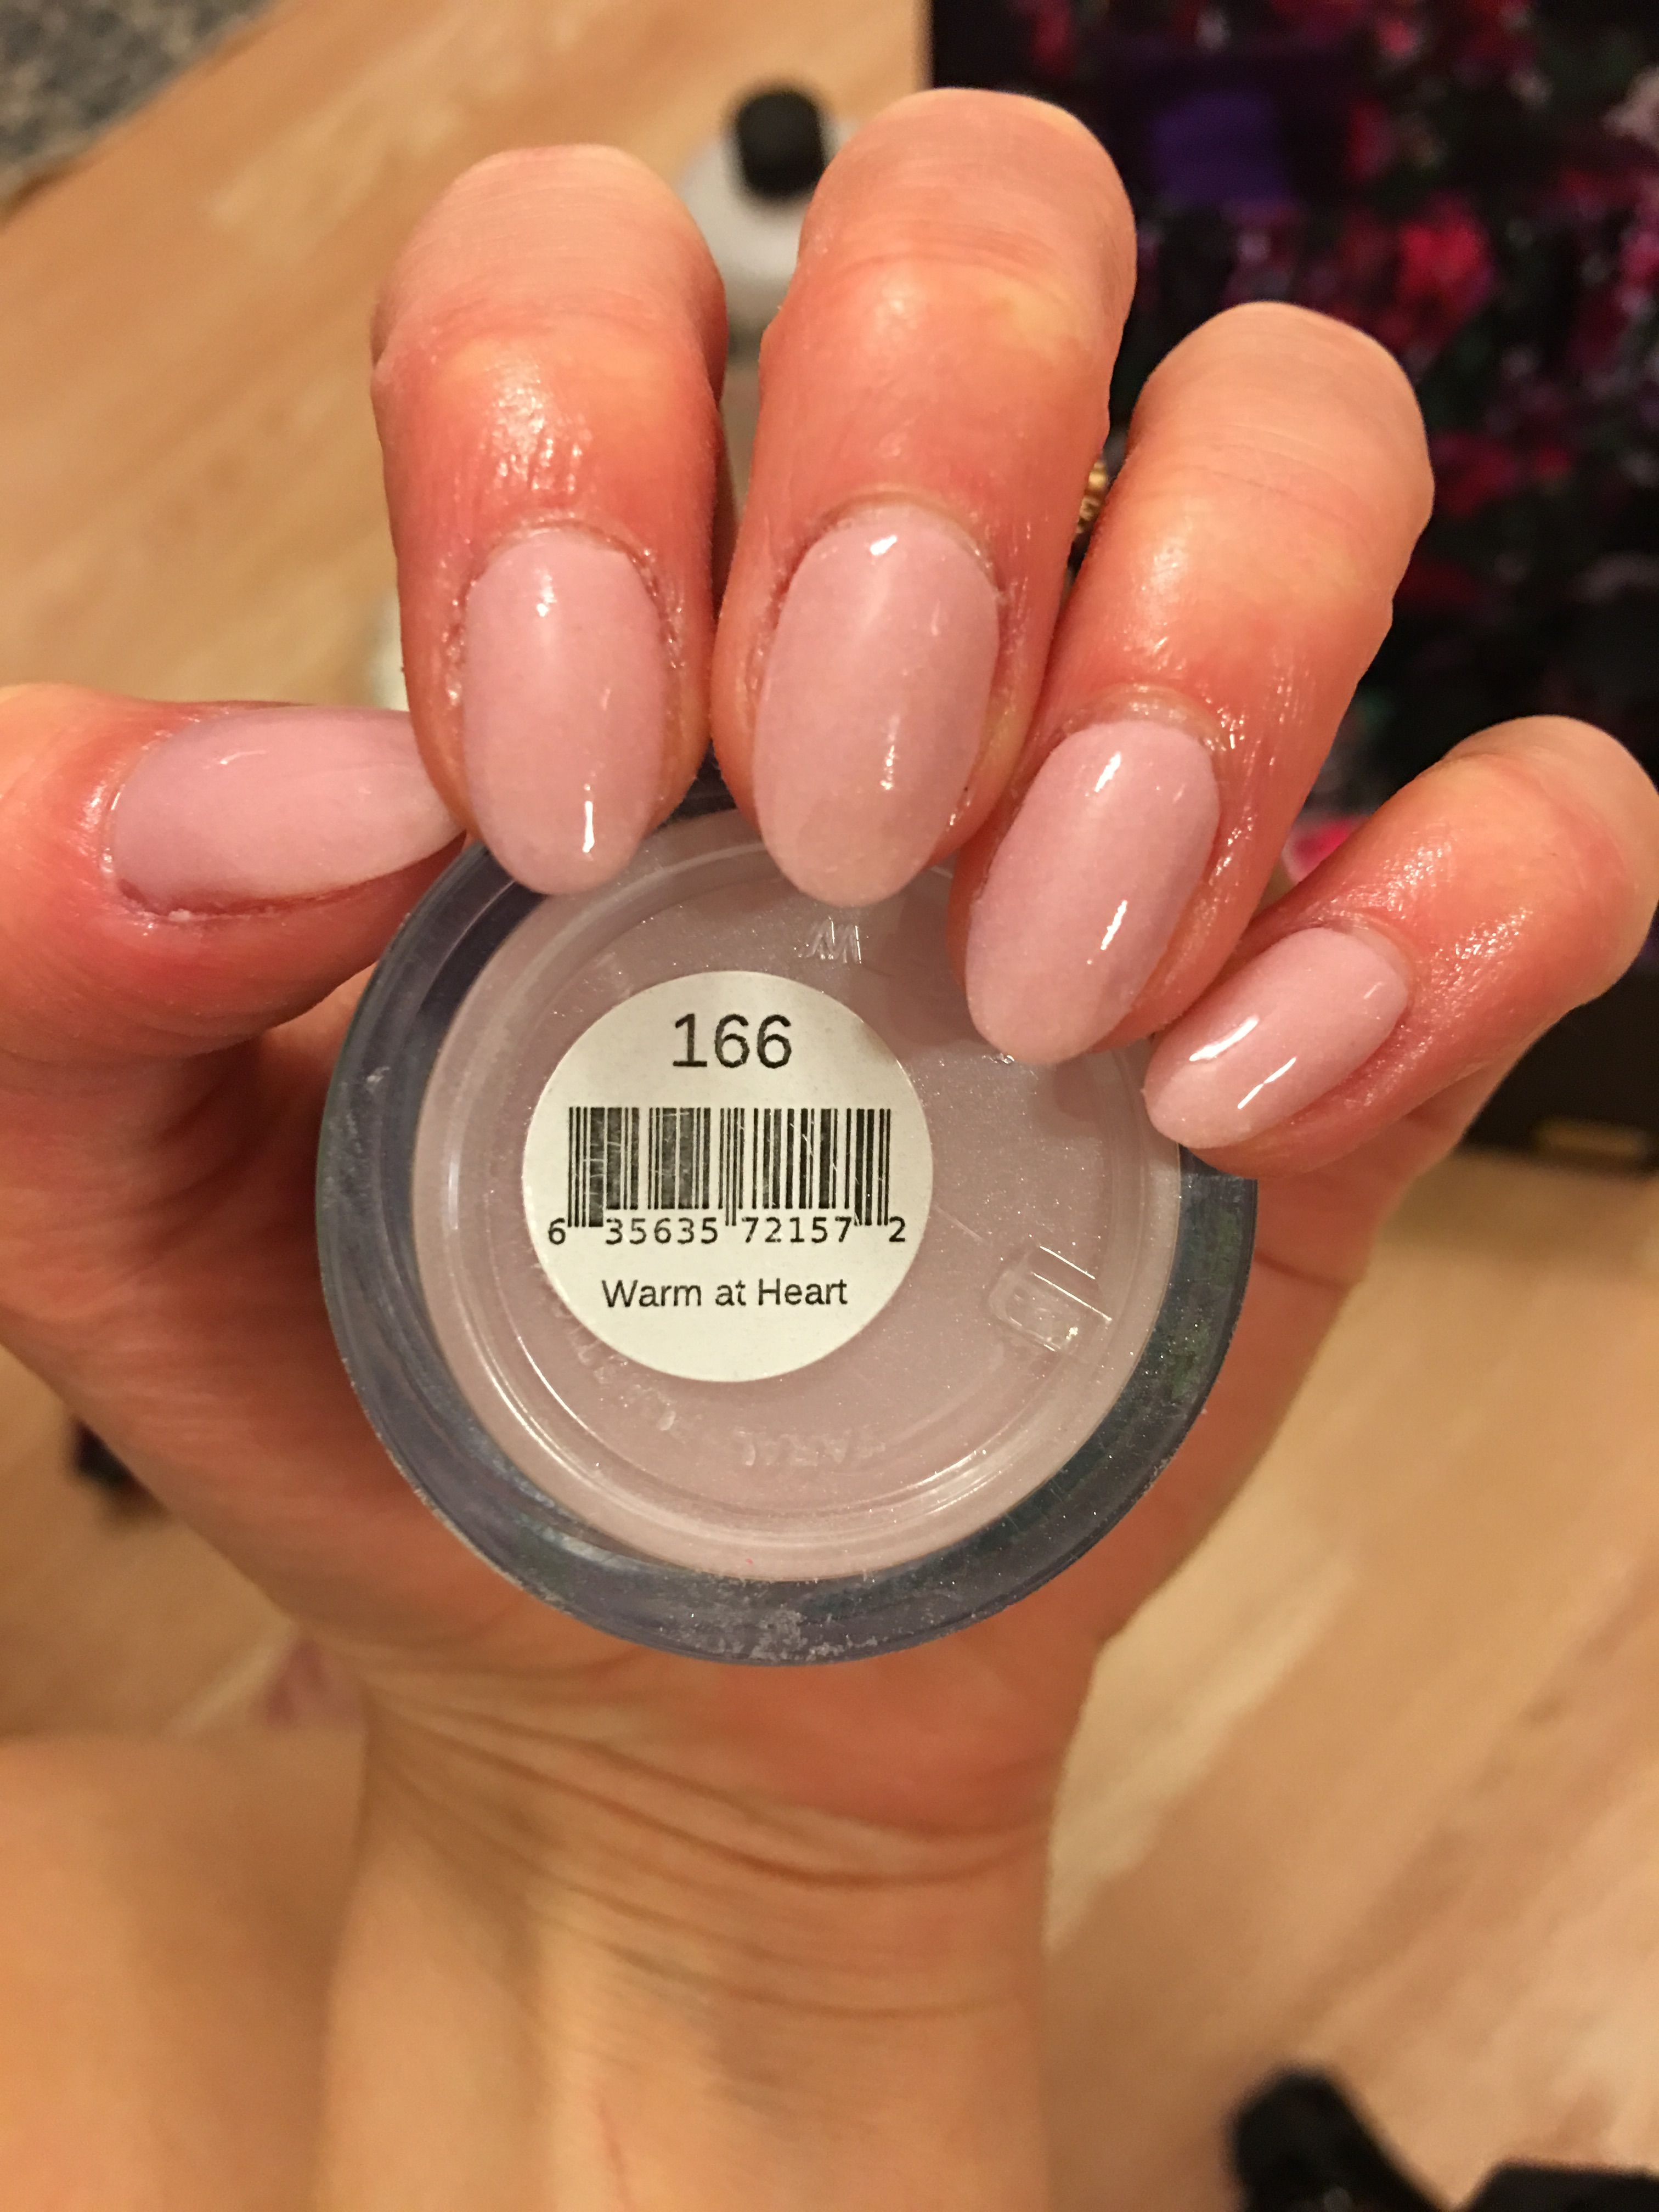 The truth about SNS nails!   OZ BEAUTY EXPERT